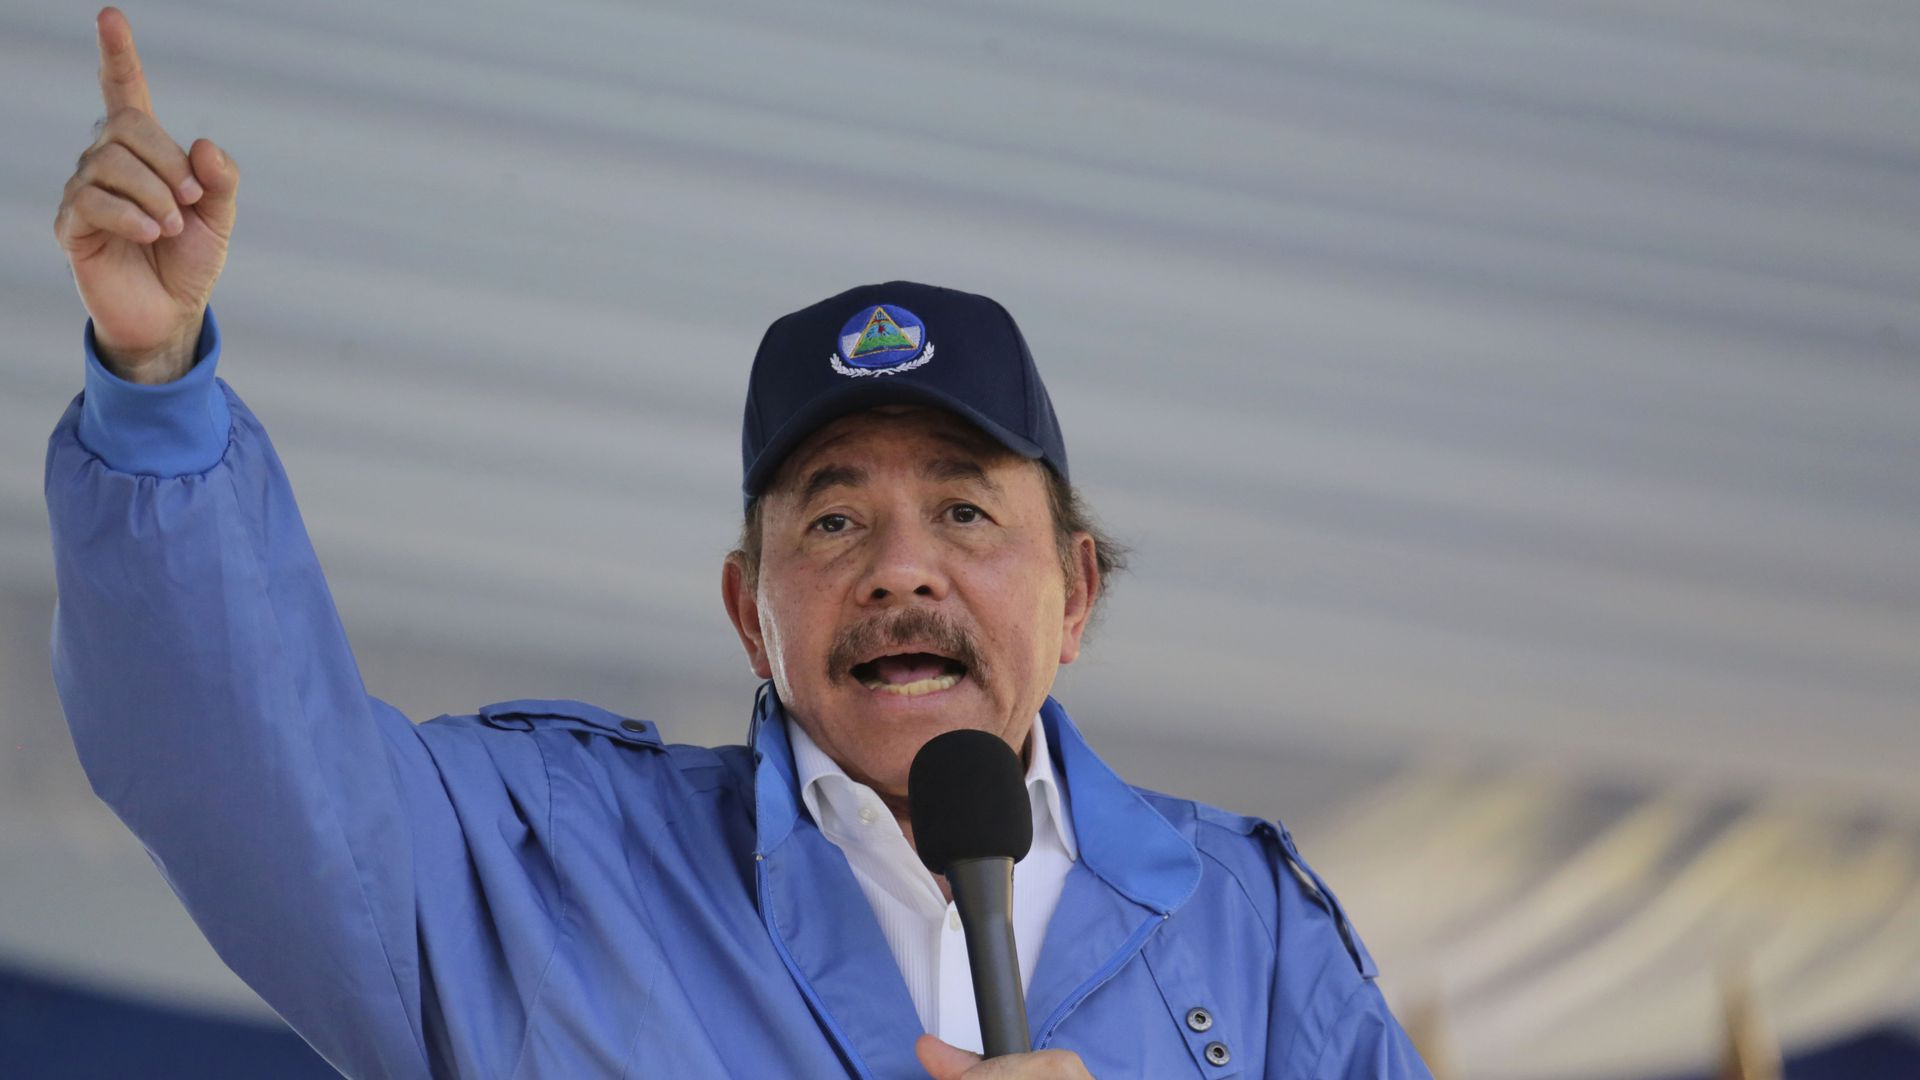 Nicaraguan President Daniel Ortega speaks during a rally, in Managua, on August 22, 2018.